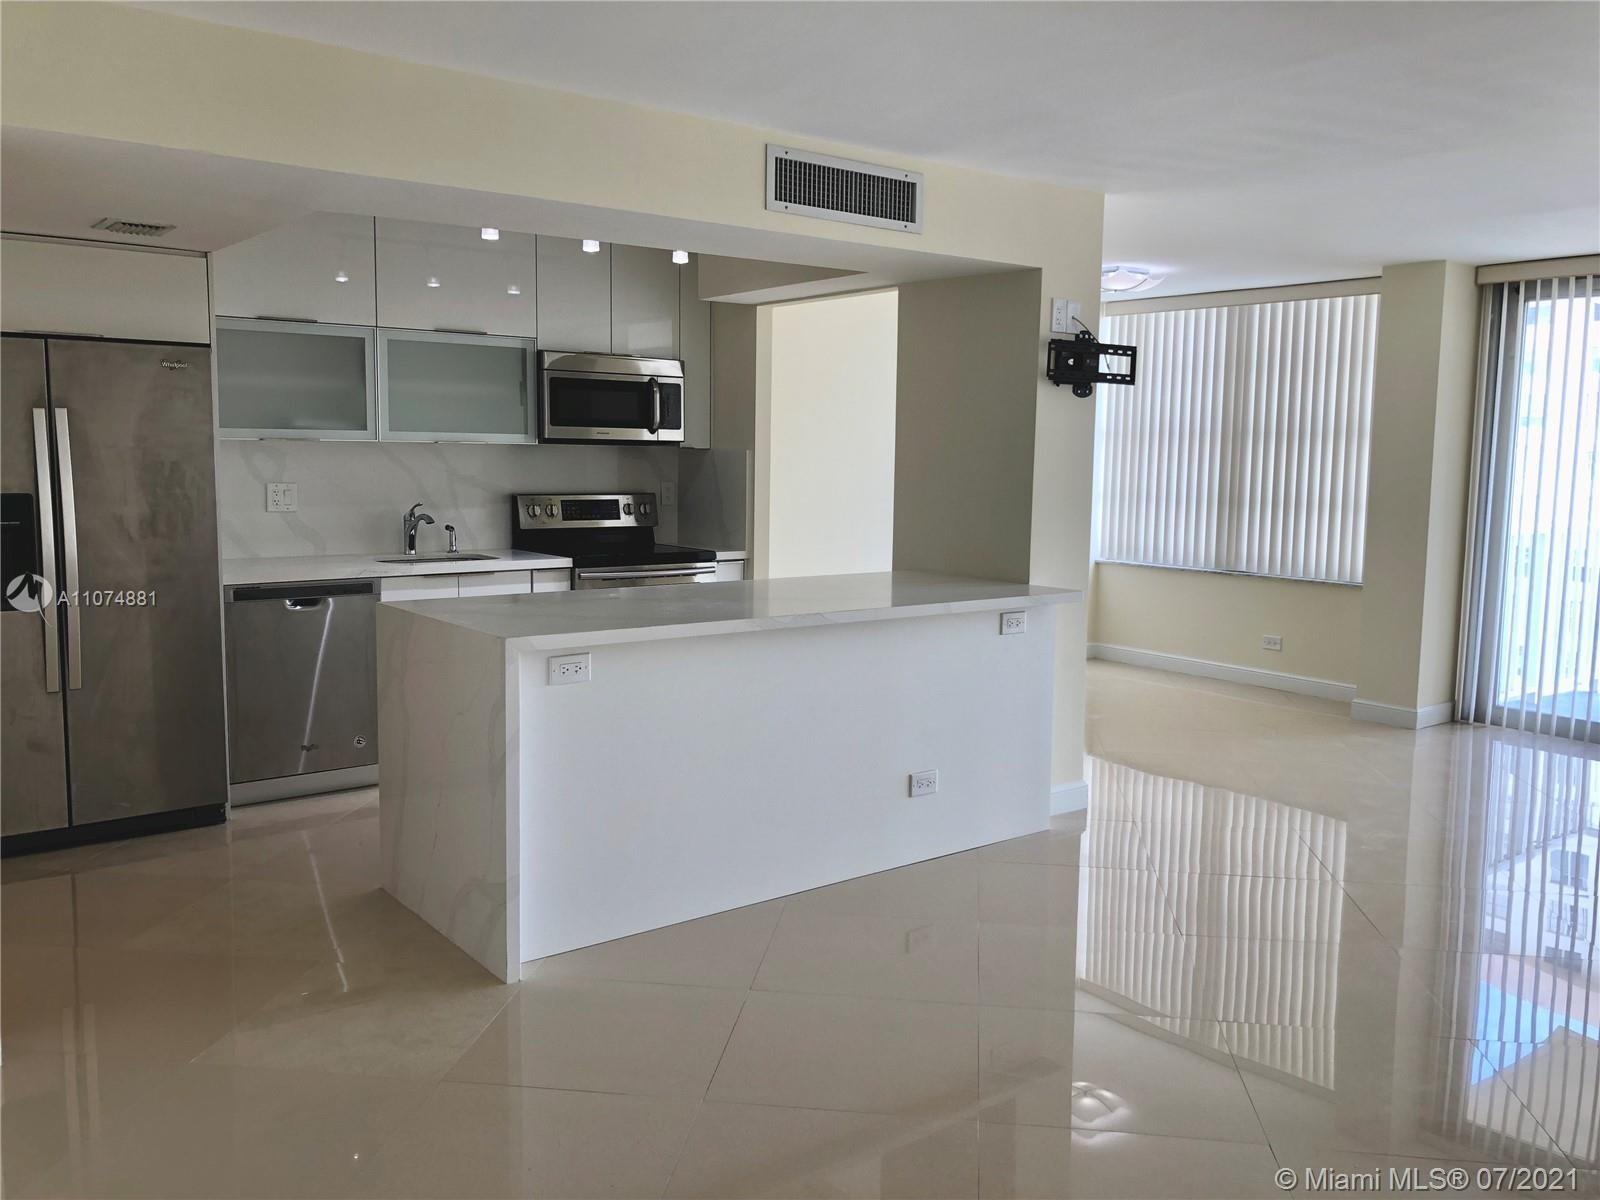 Fully Renovated 1 Bedroom 1.5 Bath steps away from the beach. All work fully permitted.